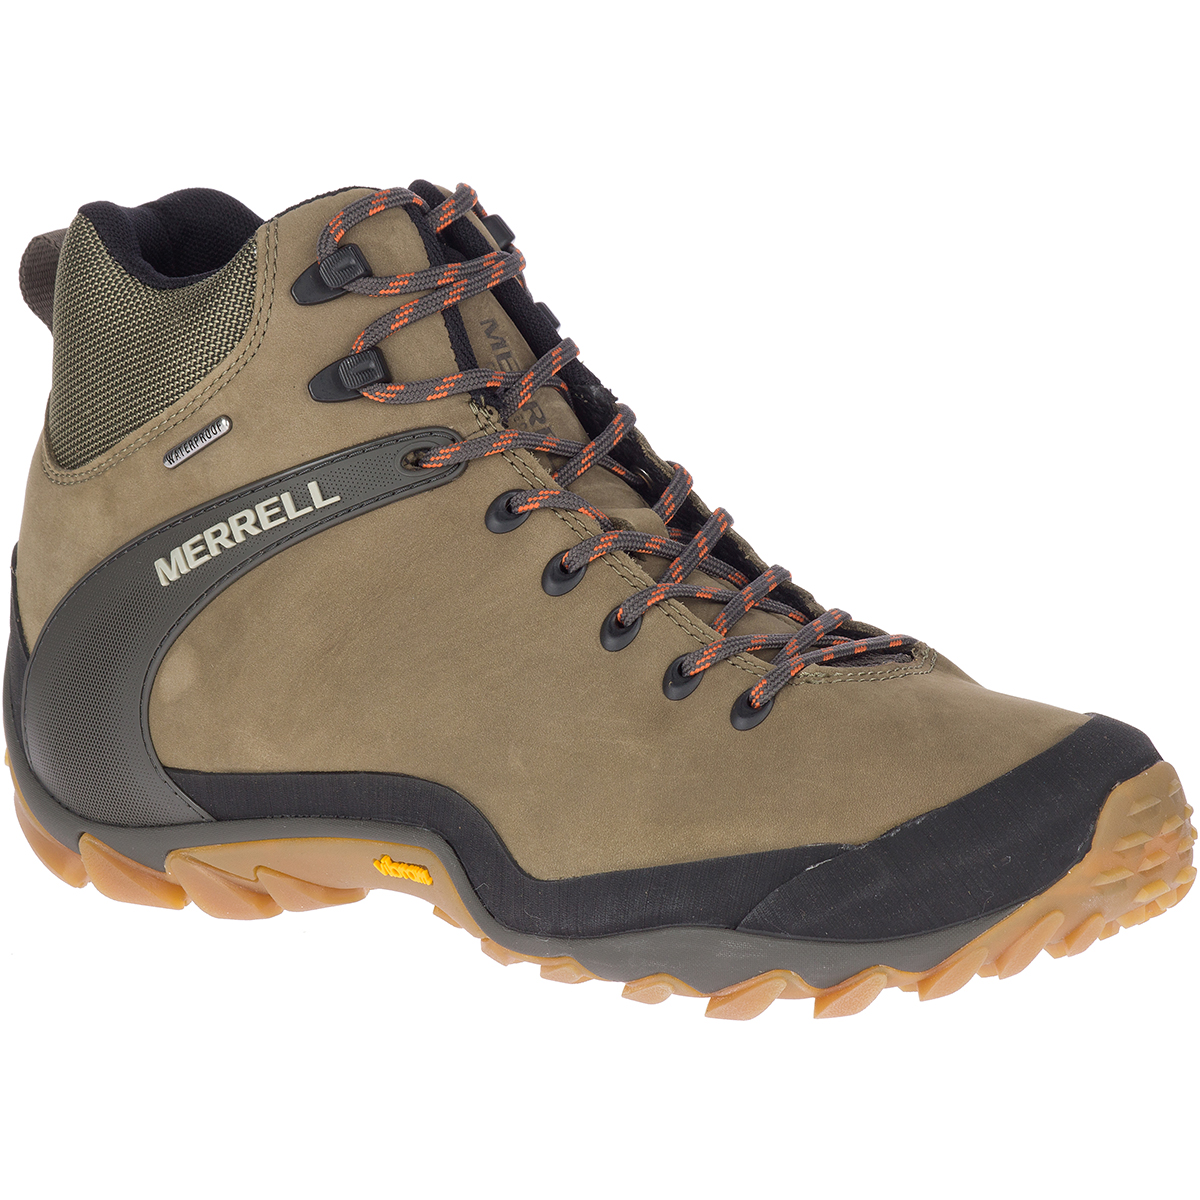 Merrell Men's Chameleon 8 Leather Mid Waterproof Hiking Shoes - Green, 11